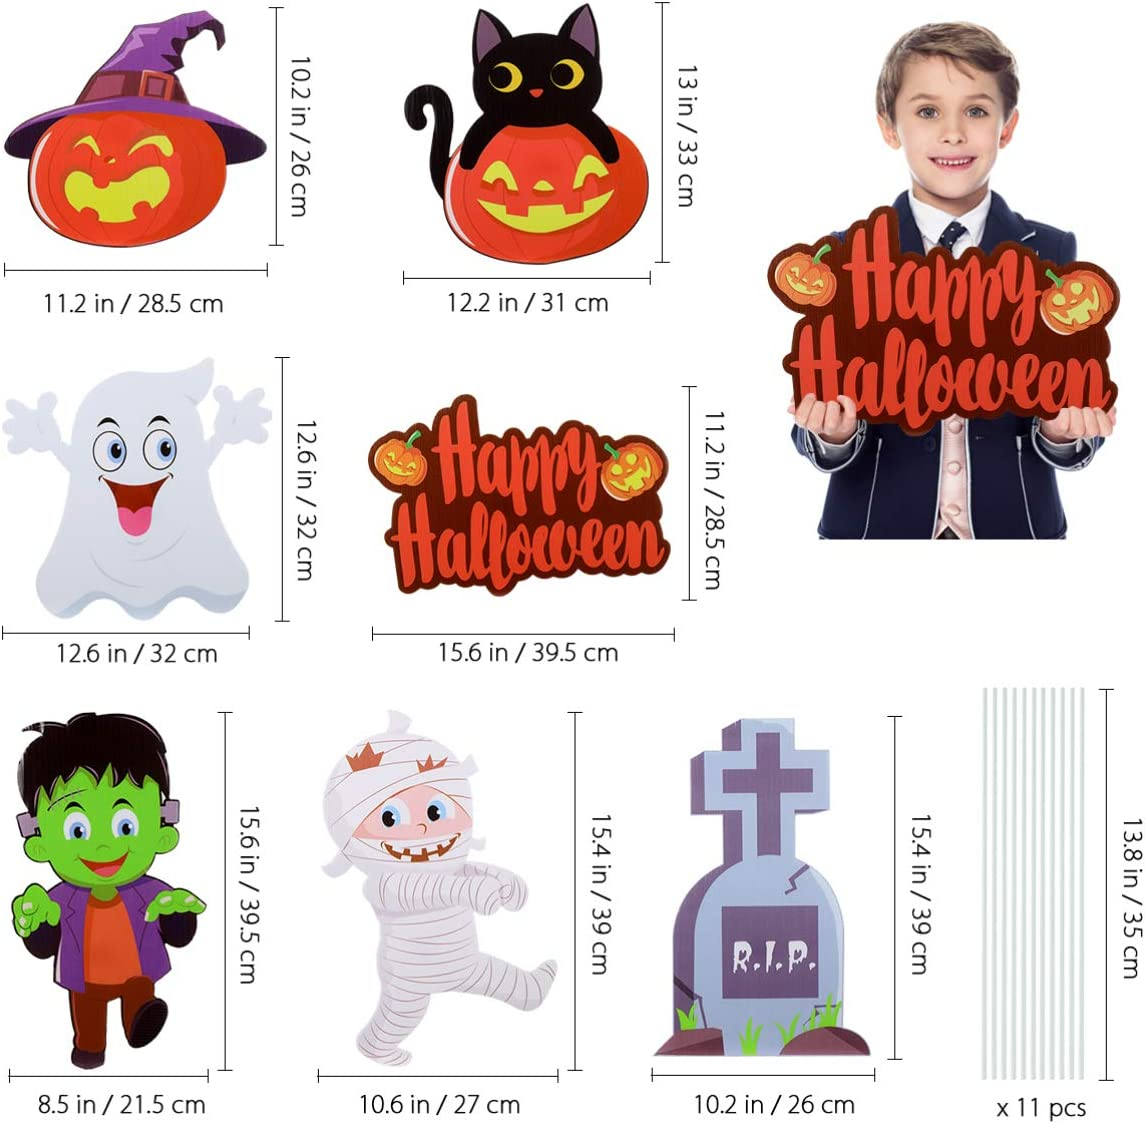 Halloween Decorations Outdoor Yard Stake Signs, Halloween Yard Lawn Decorations 7Pcs